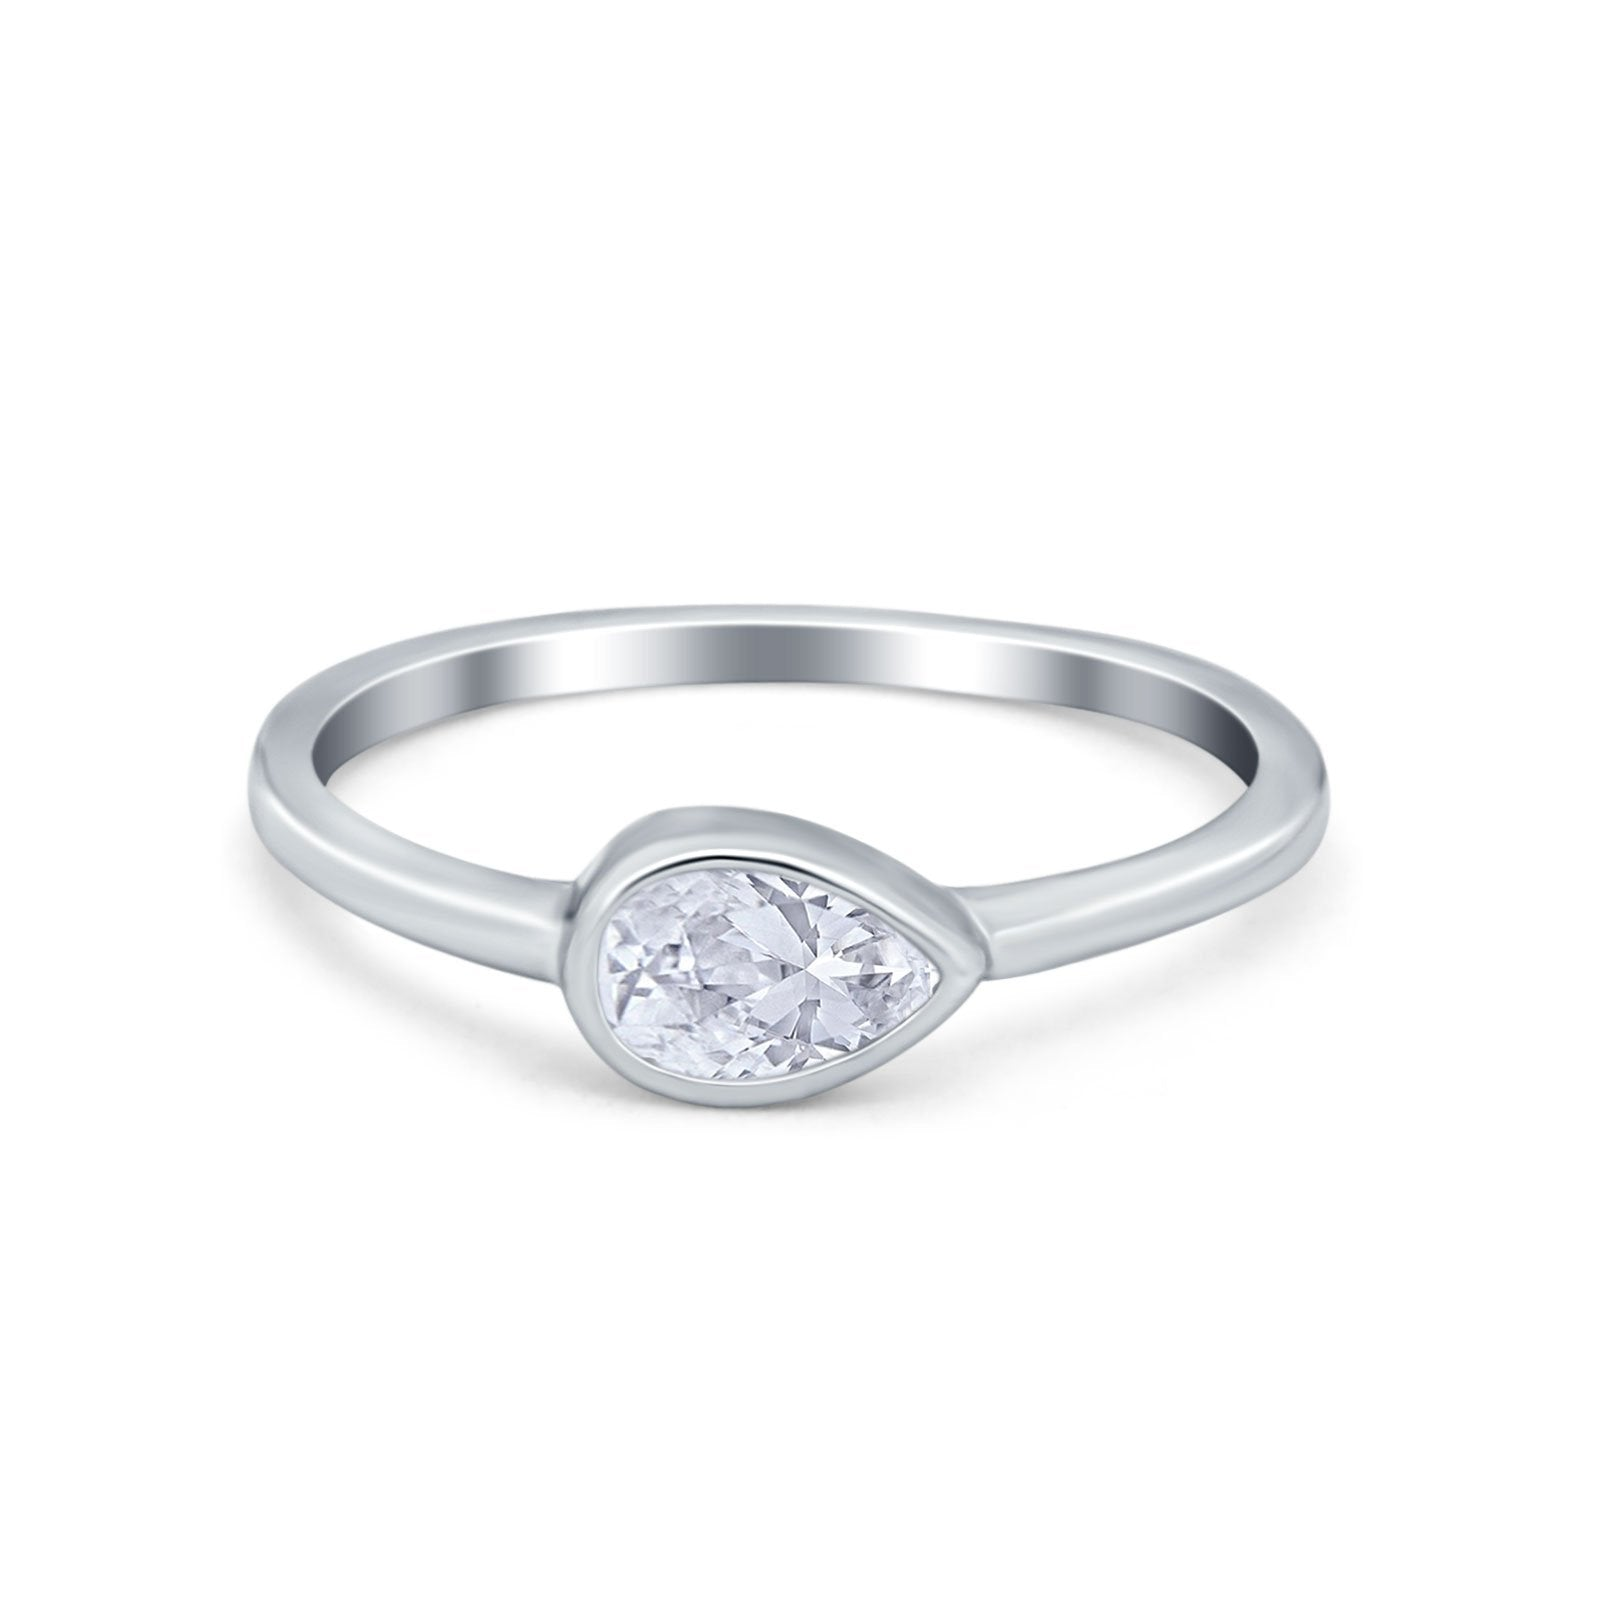 Pear Solitaire Wedding Ring Bezel Simulated Cubic Zirconia 925 Sterling Silver